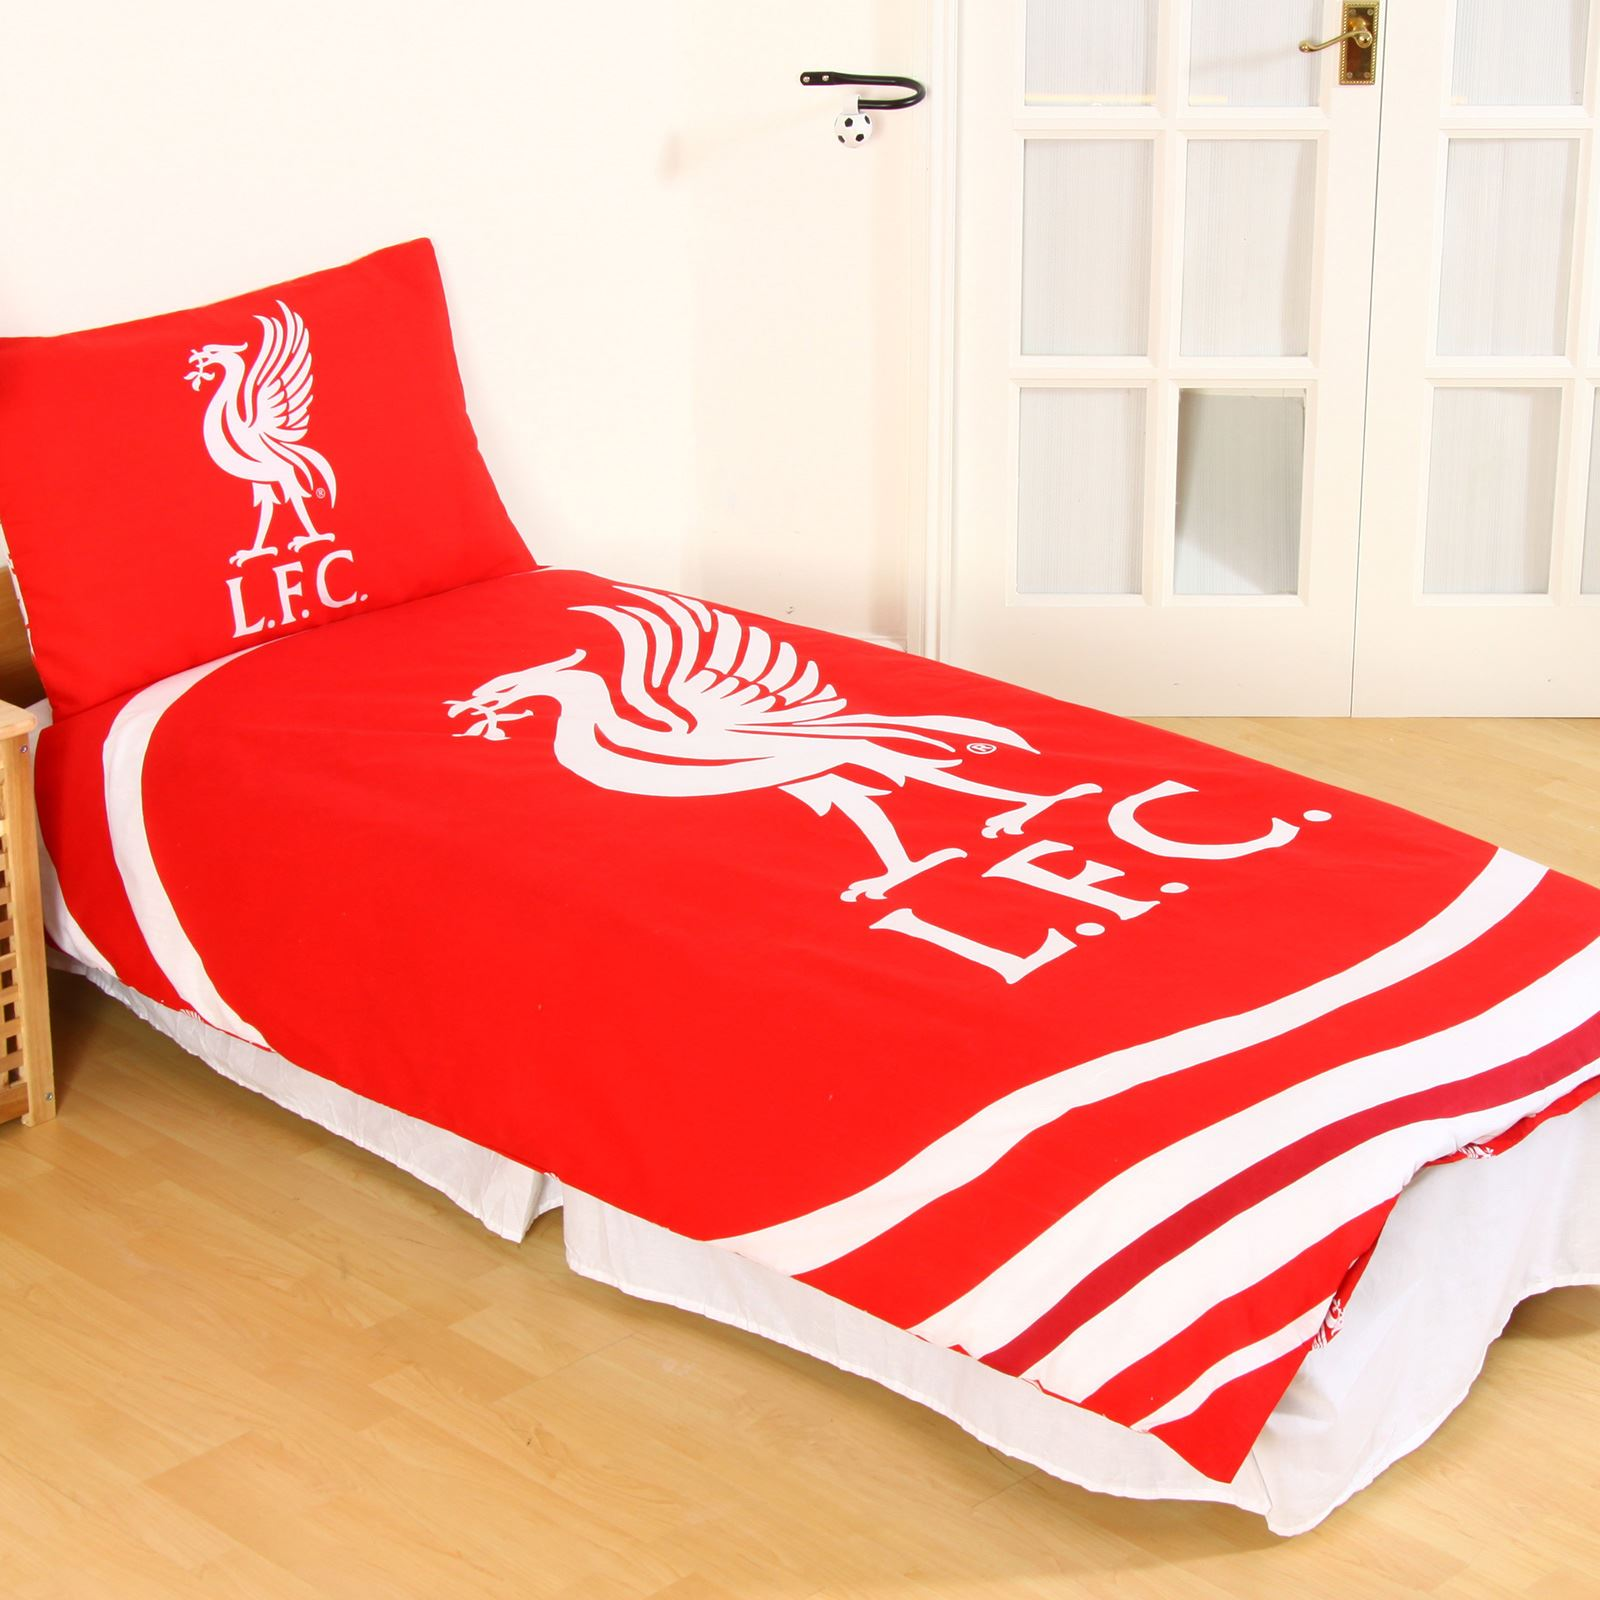 LIVERPOOL FC SINGLE AND DOUBLE DUVET COVER SETS BEDROOM